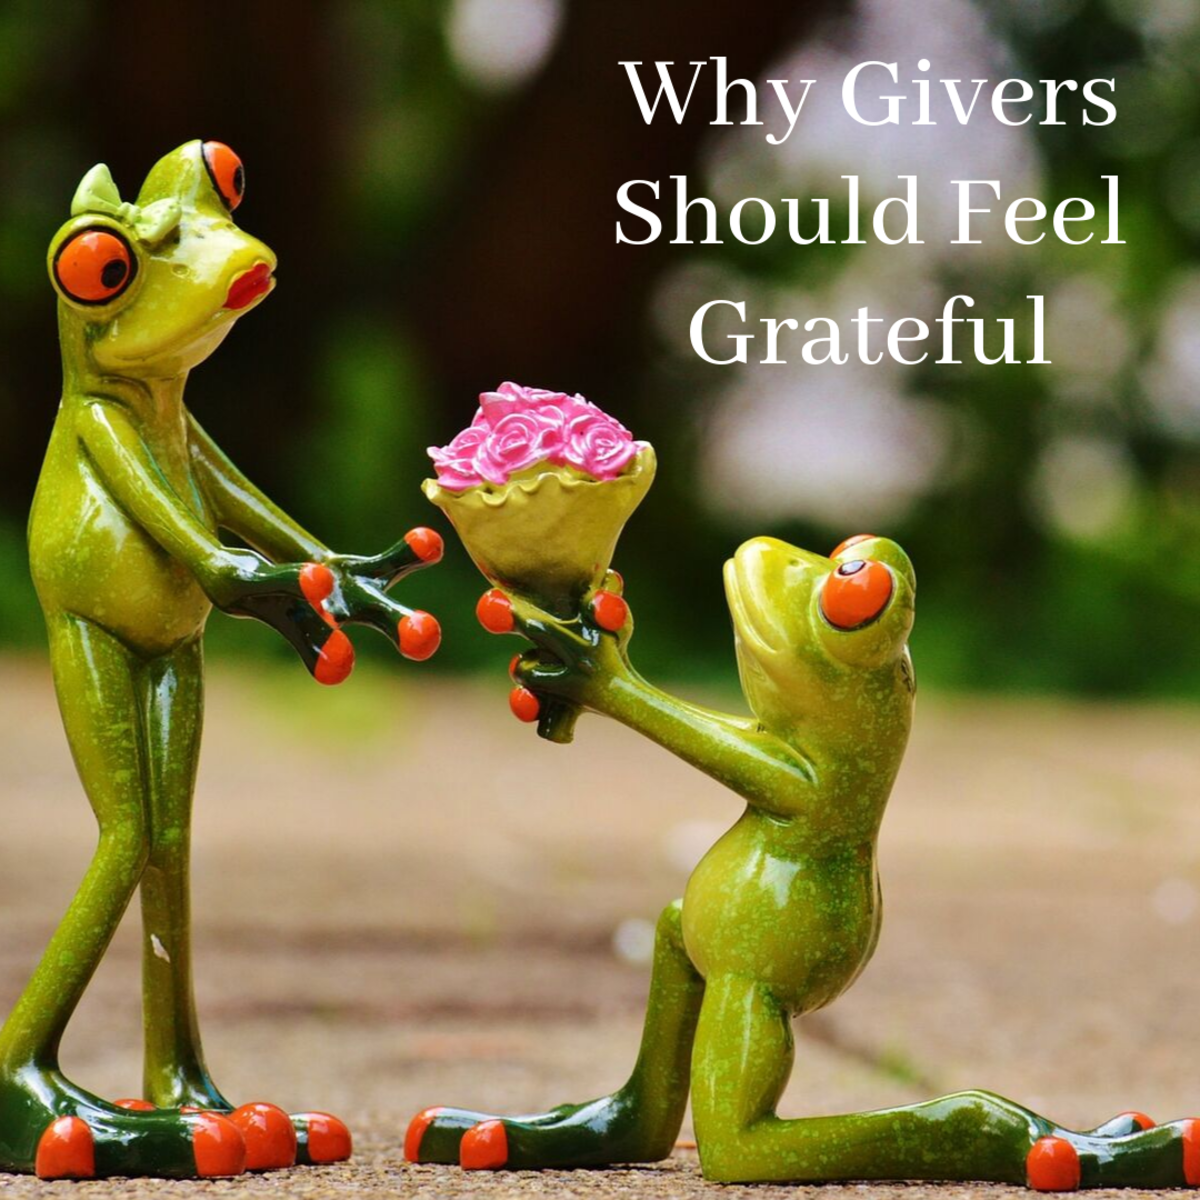 This article lists five reasons why givers should be grateful for the opportunity to help others.